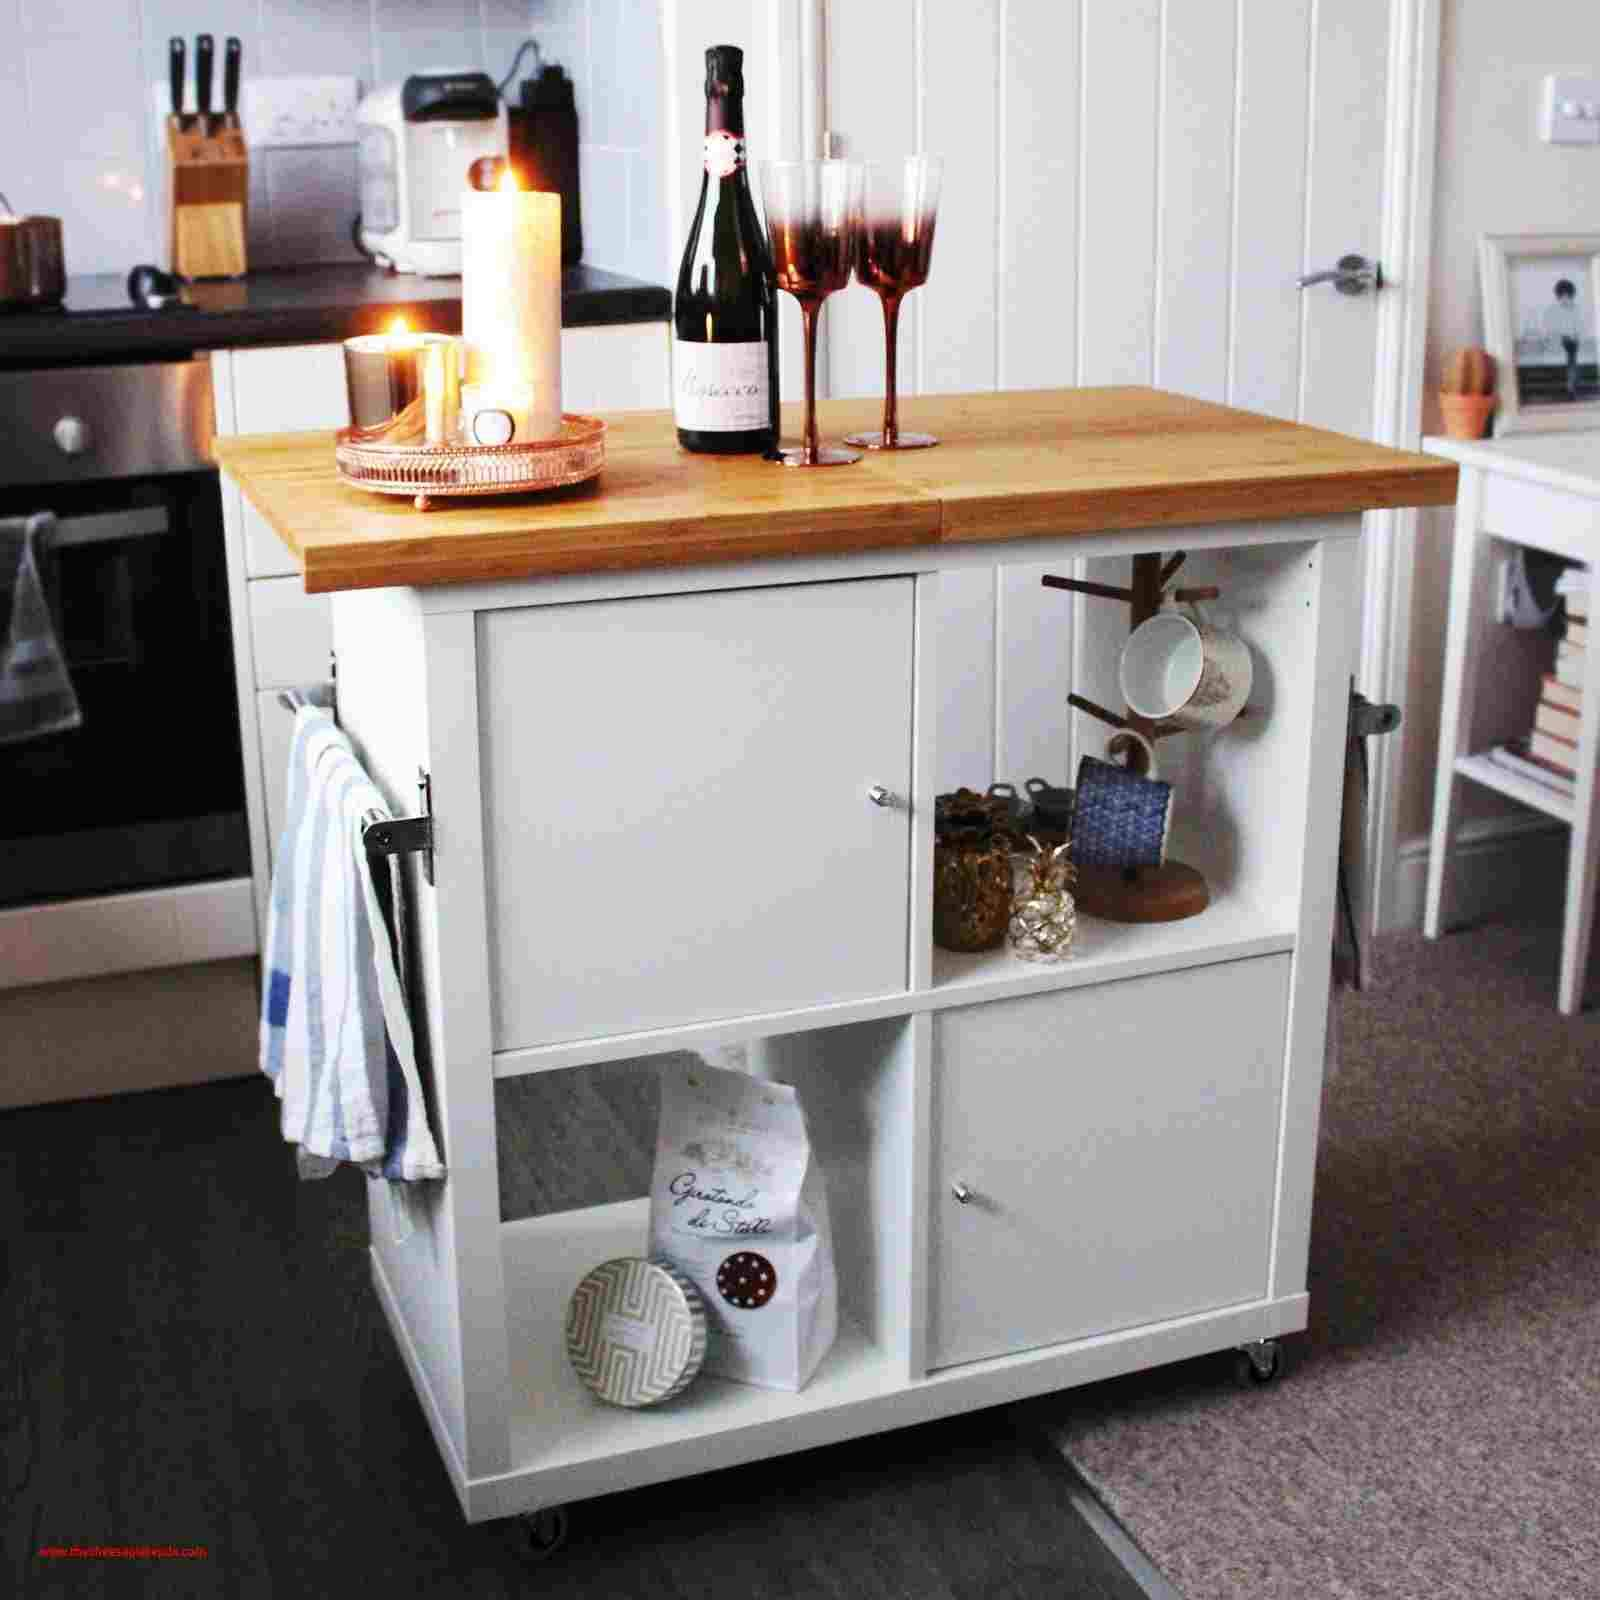 should ikea flur new ikea flur encourage make it kitchen islands created products of